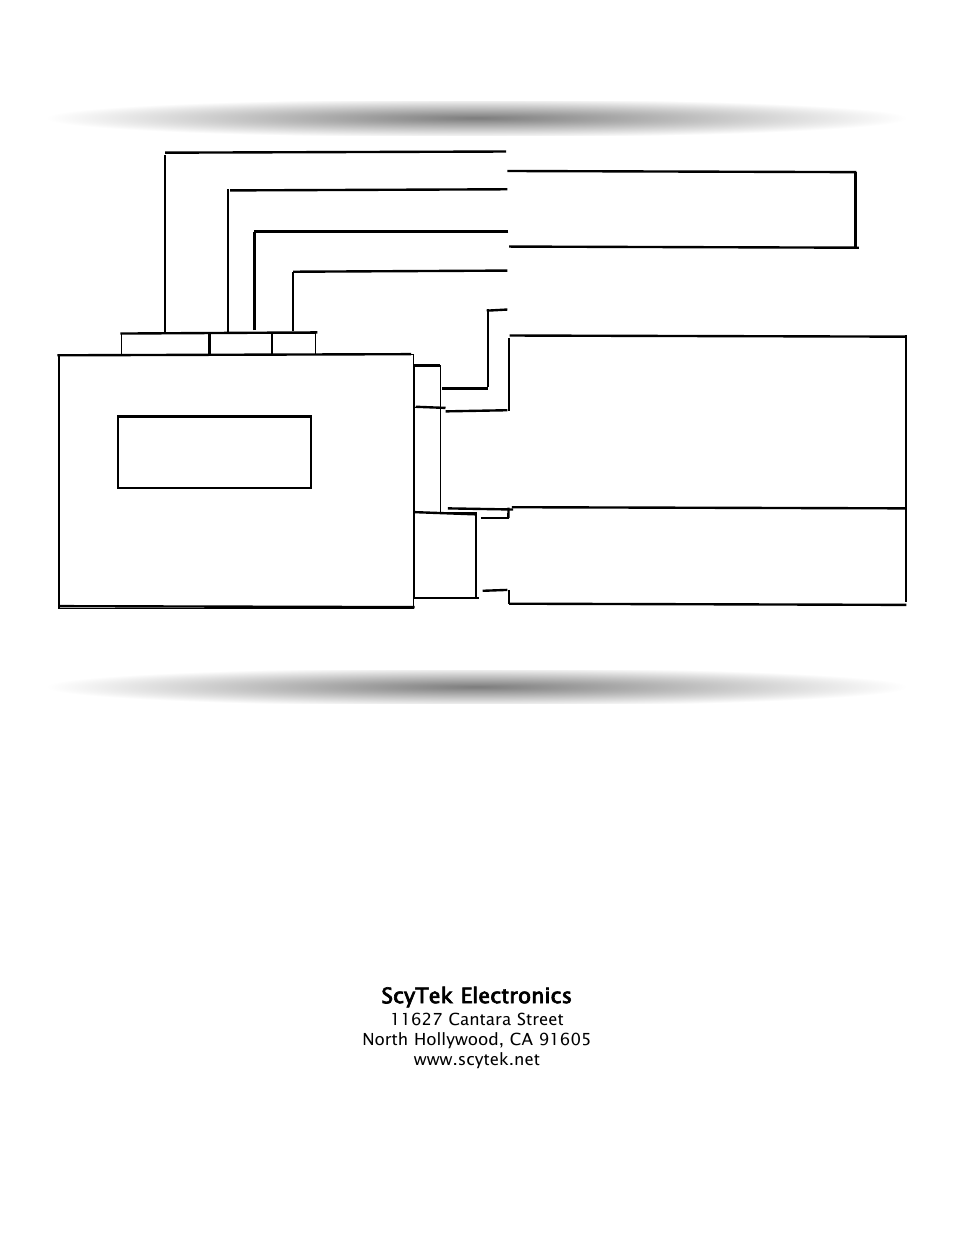 scytek electronics a10 series page20 wiring diagram, technical information, control unit a10 scytek astra 777 wiring diagram manual at bakdesigns.co